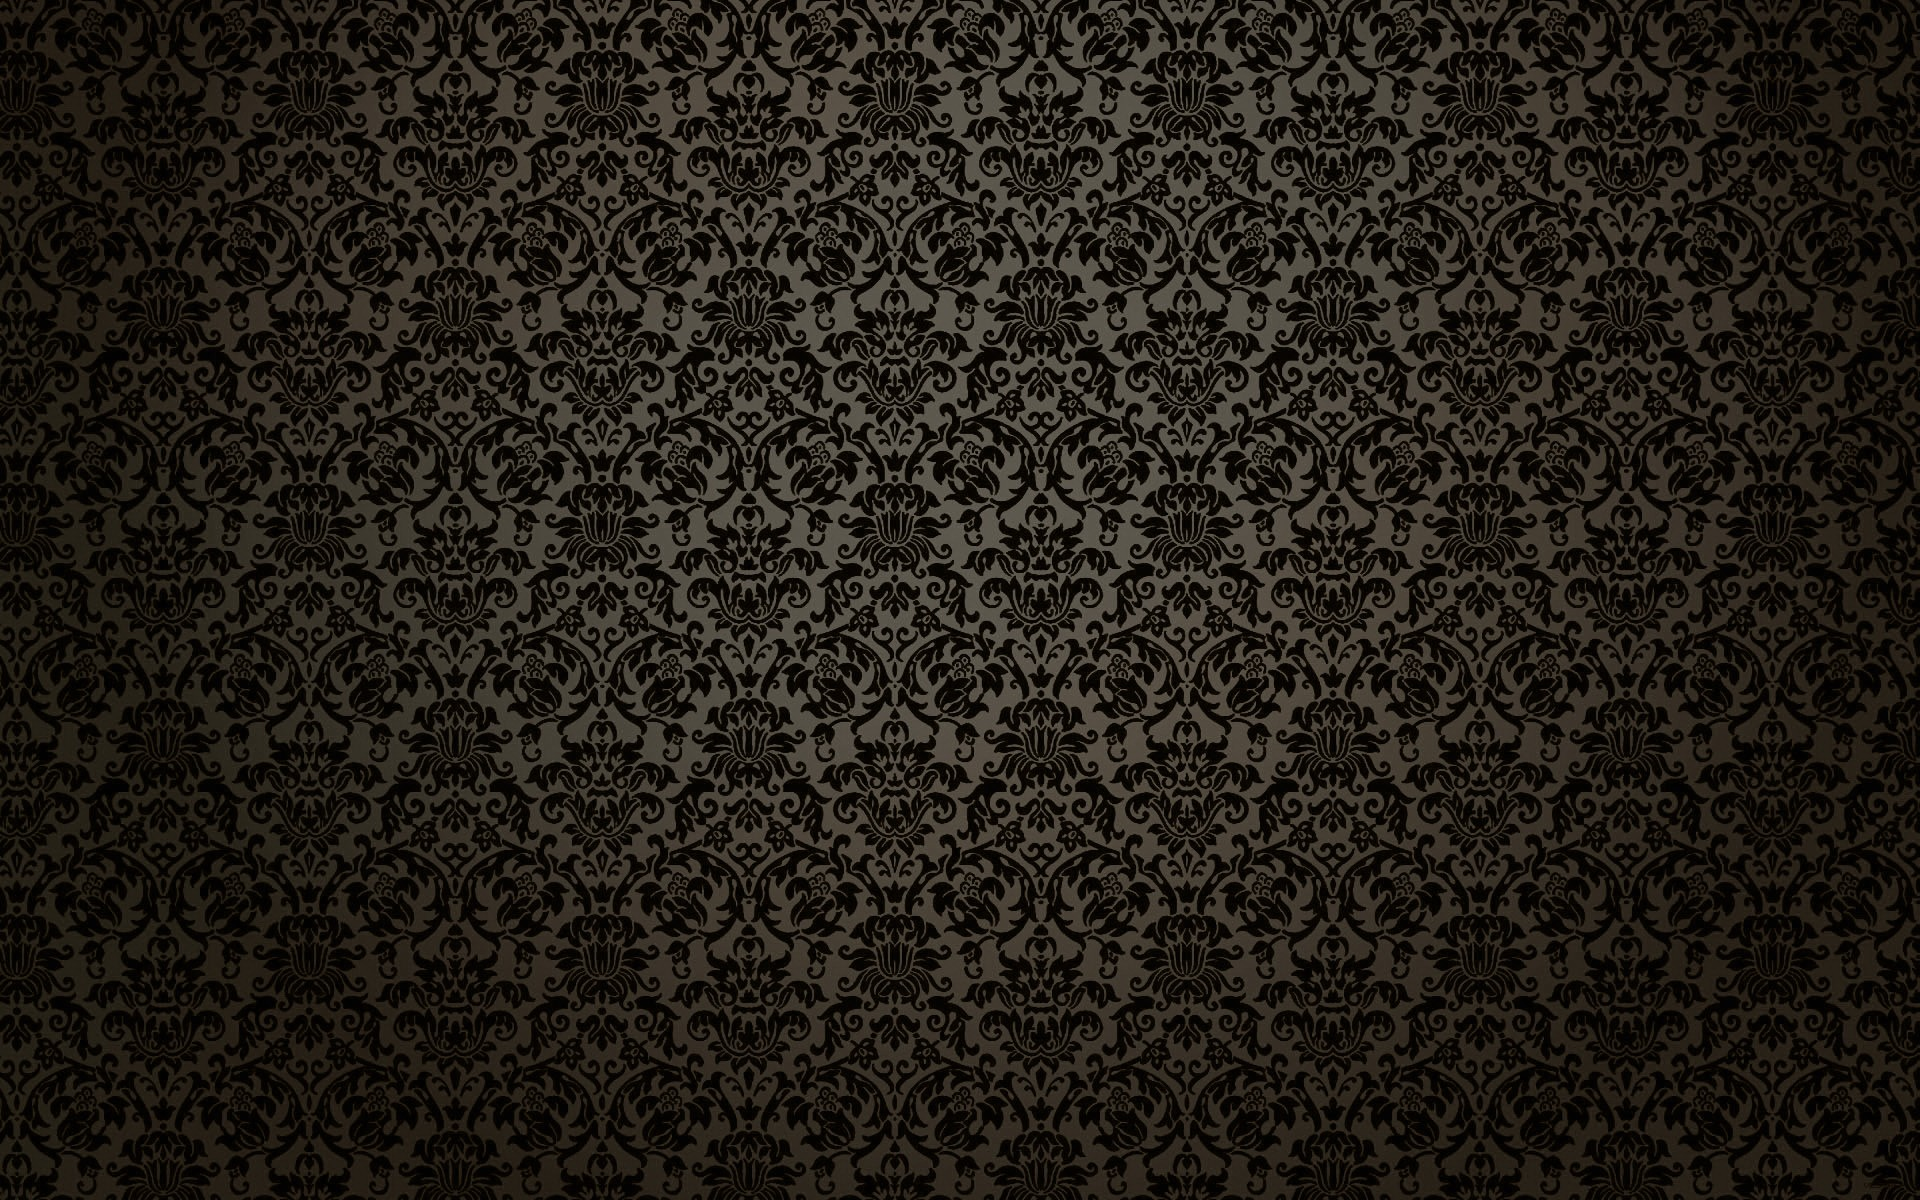 Victorian wallpaper 1920x1200 82180 for Victorian wallpaper